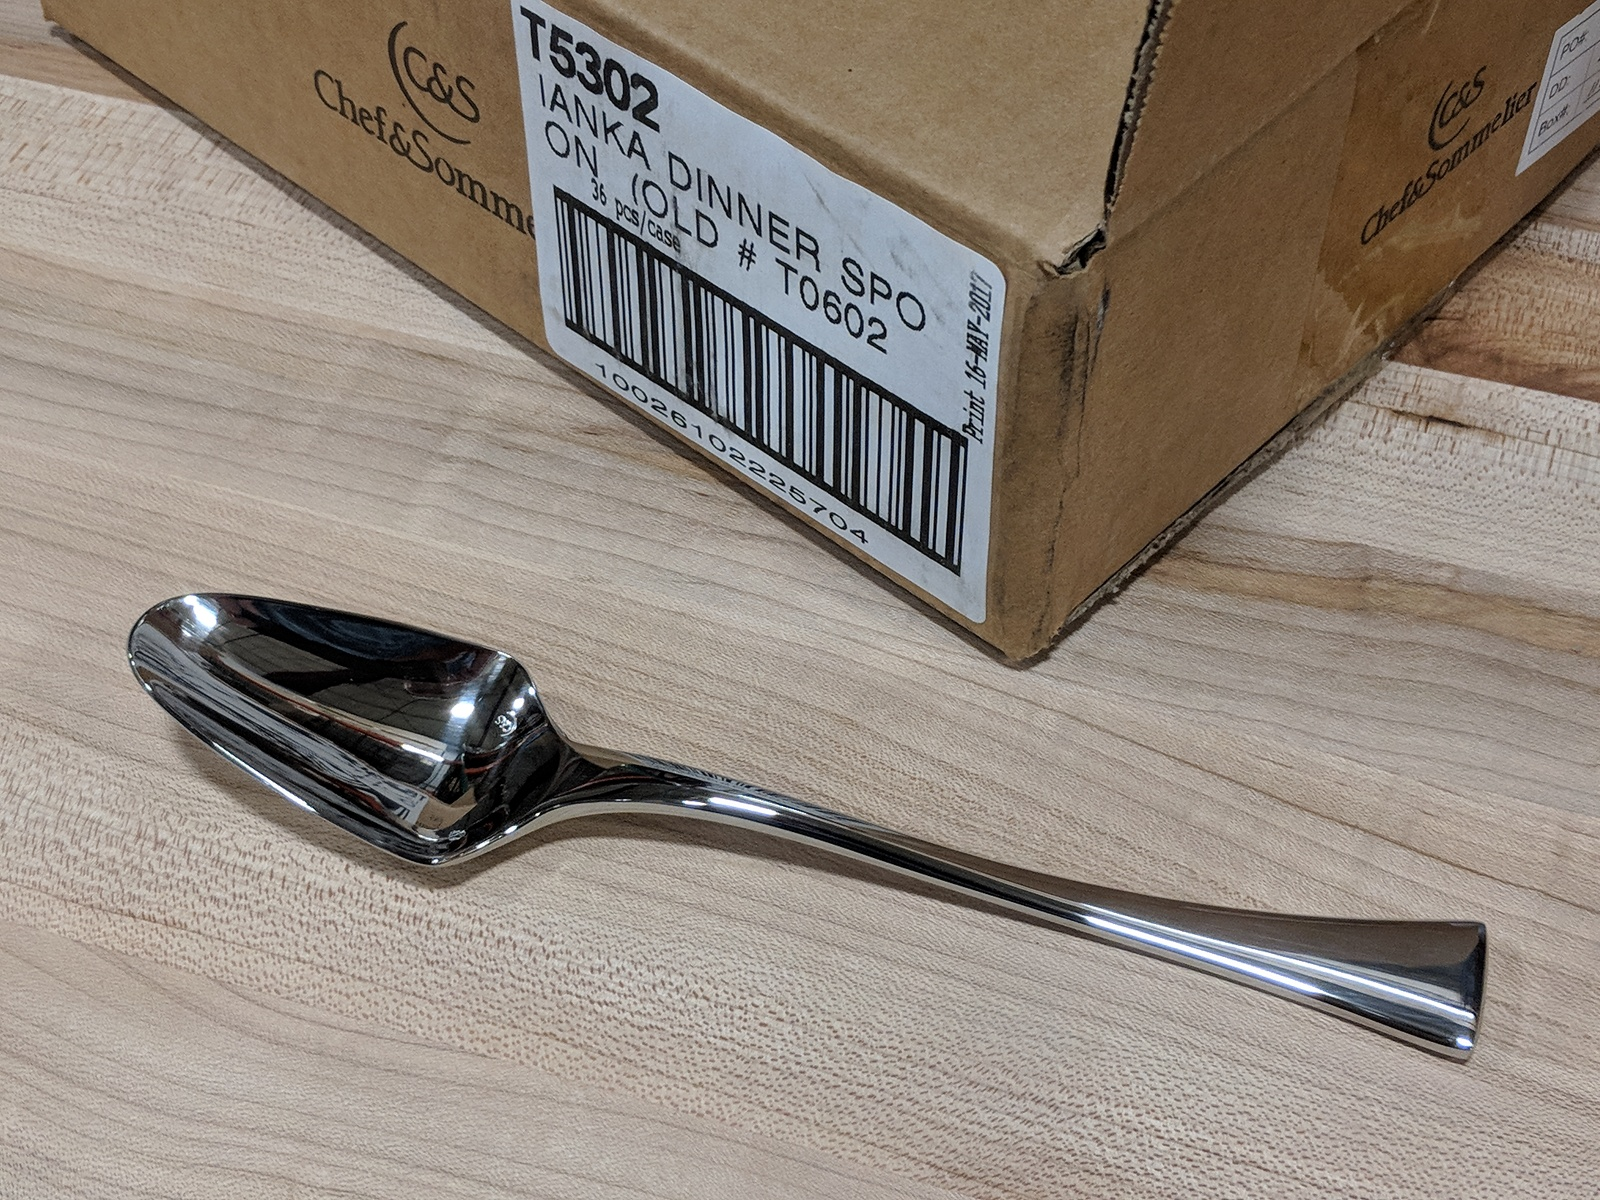 """Lot 47 - 8-1/4"""" Dinner Spoons, Extra Heavy Weight Chef & Sommelier T5302 - Lot of 36"""